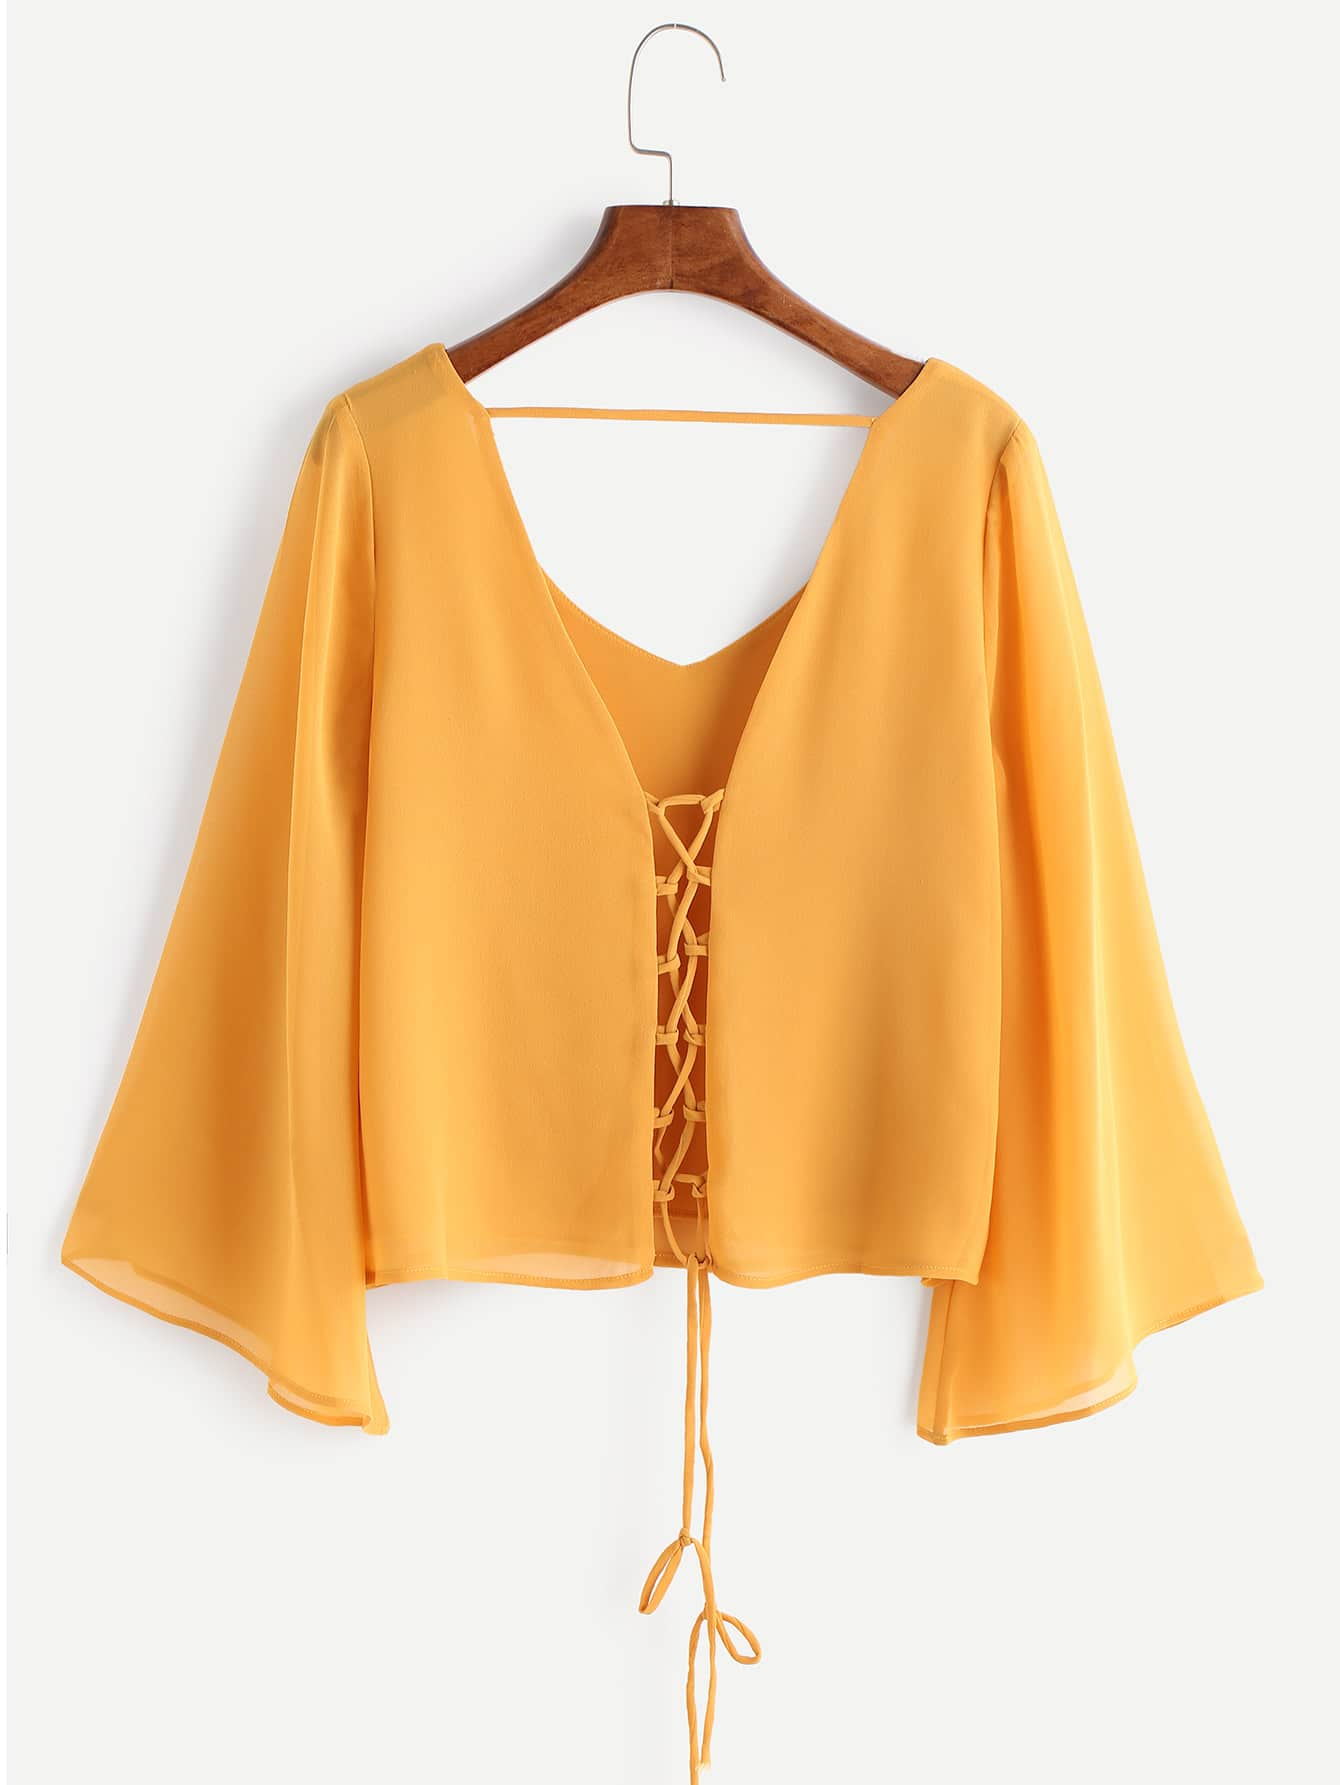 Kimono Sleeve Criss Cross Lace-Up Blouse criss cross lace up bodysuit